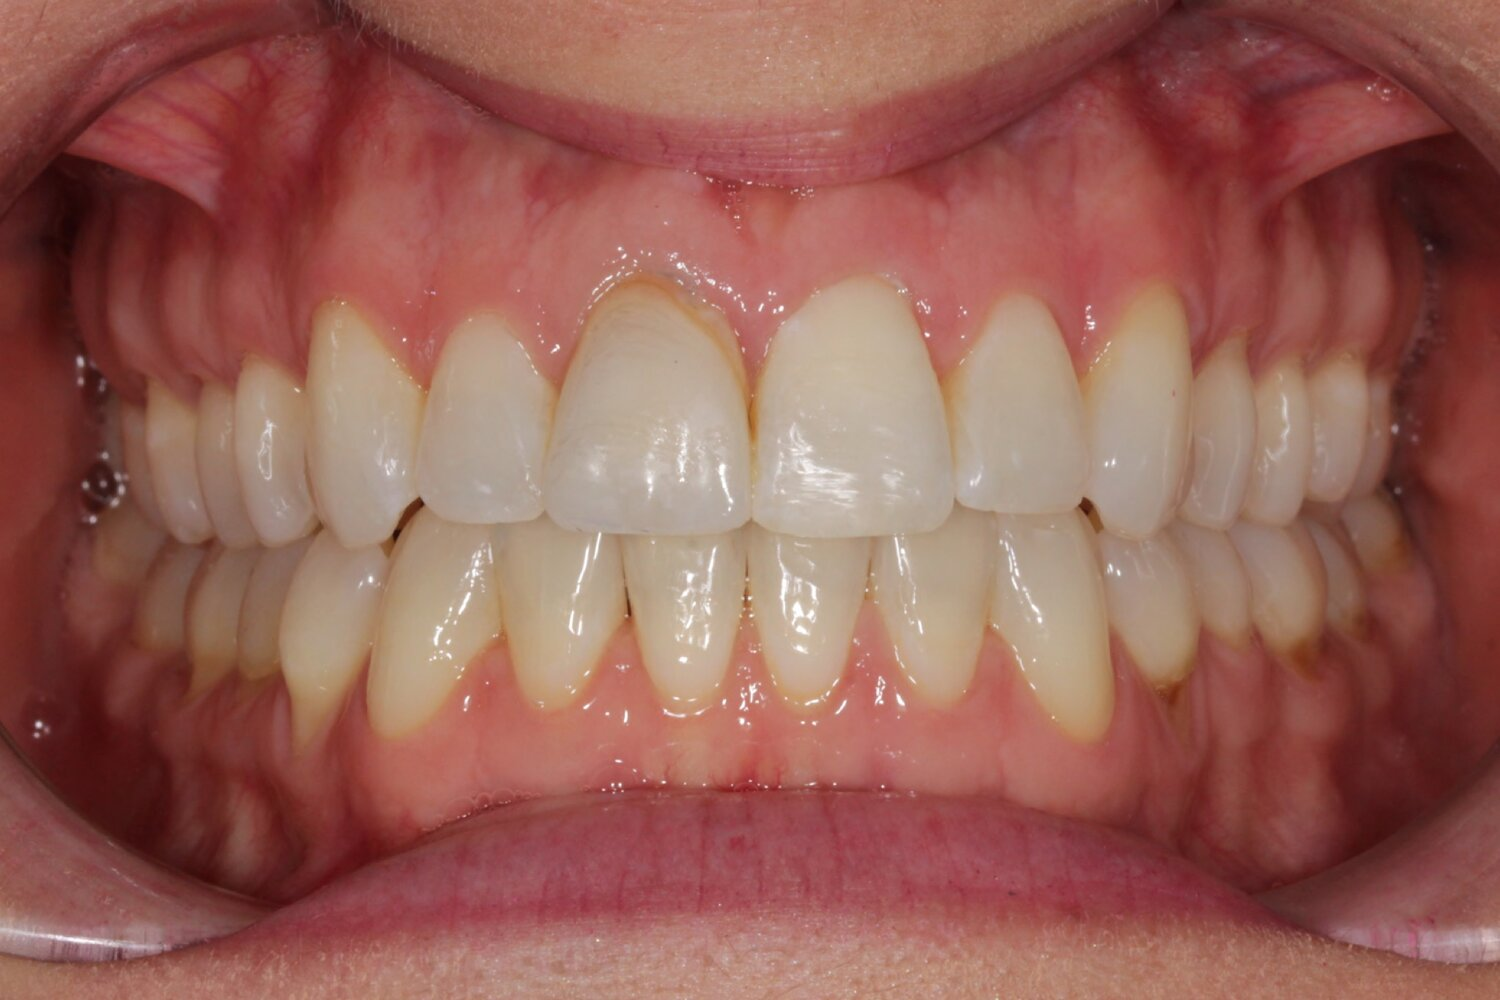 Frontal Intraoral Photo.jpg